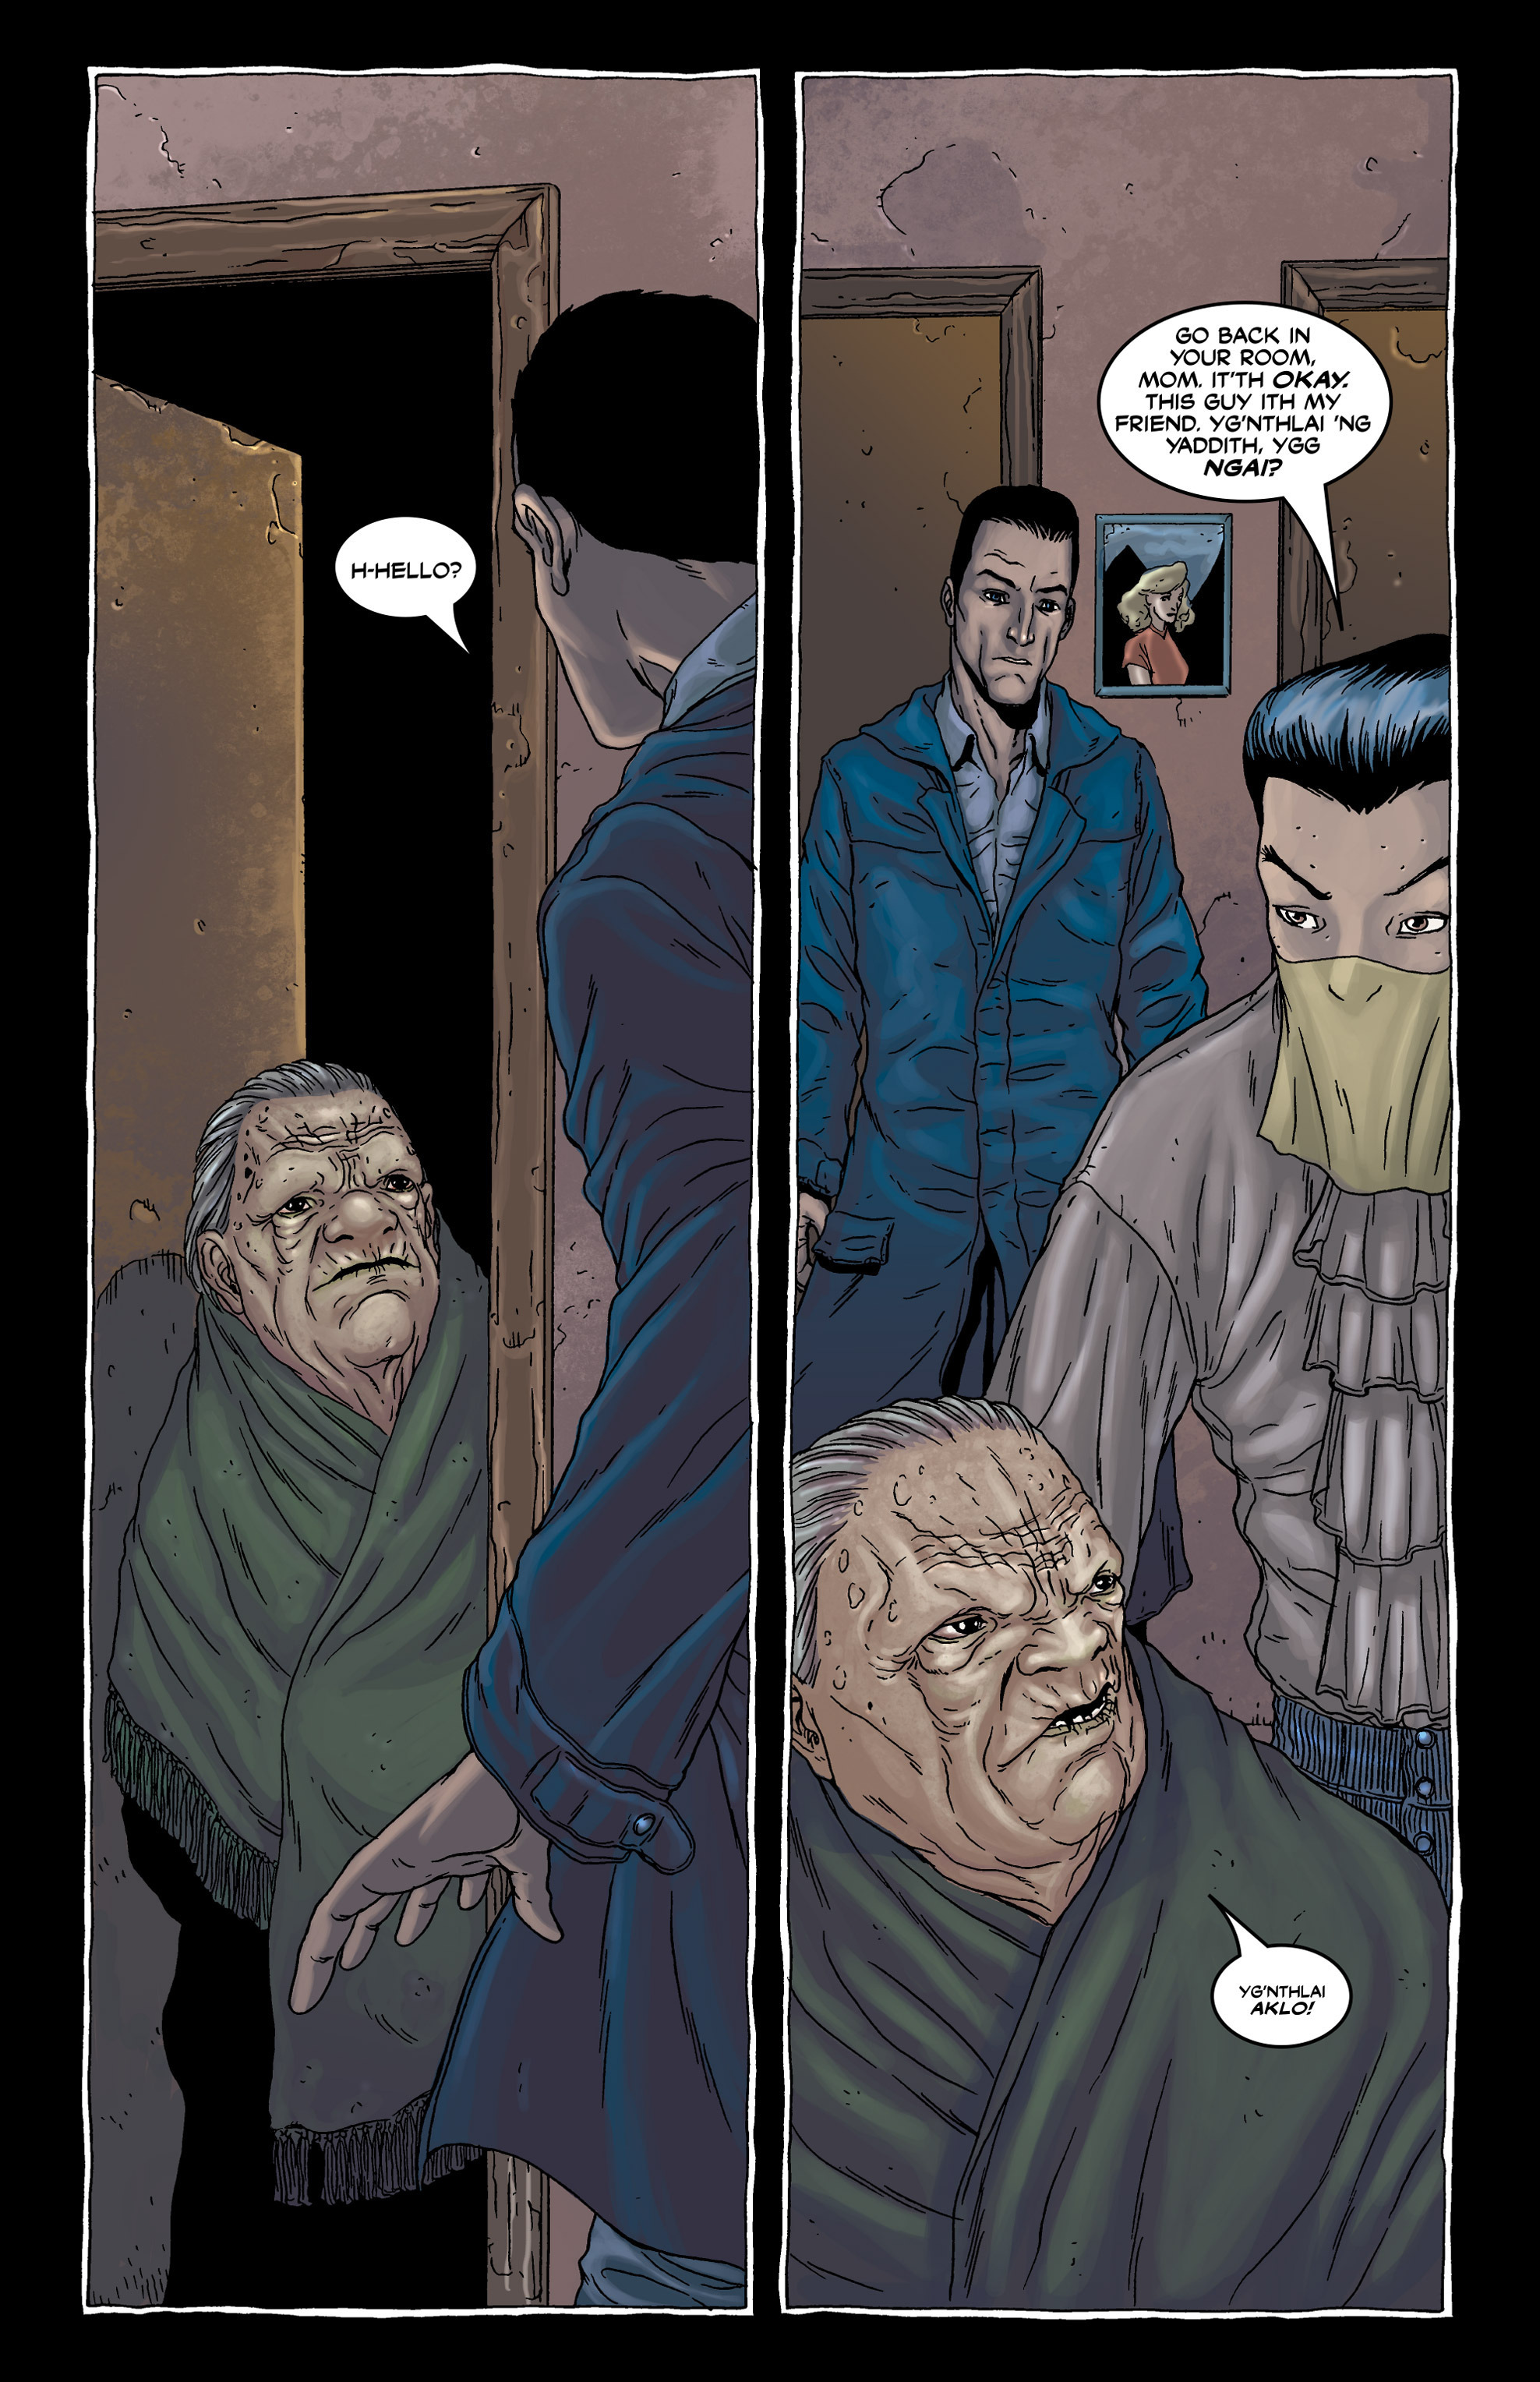 Read online Alan Moore's The Courtyard comic -  Issue # TPB - 36